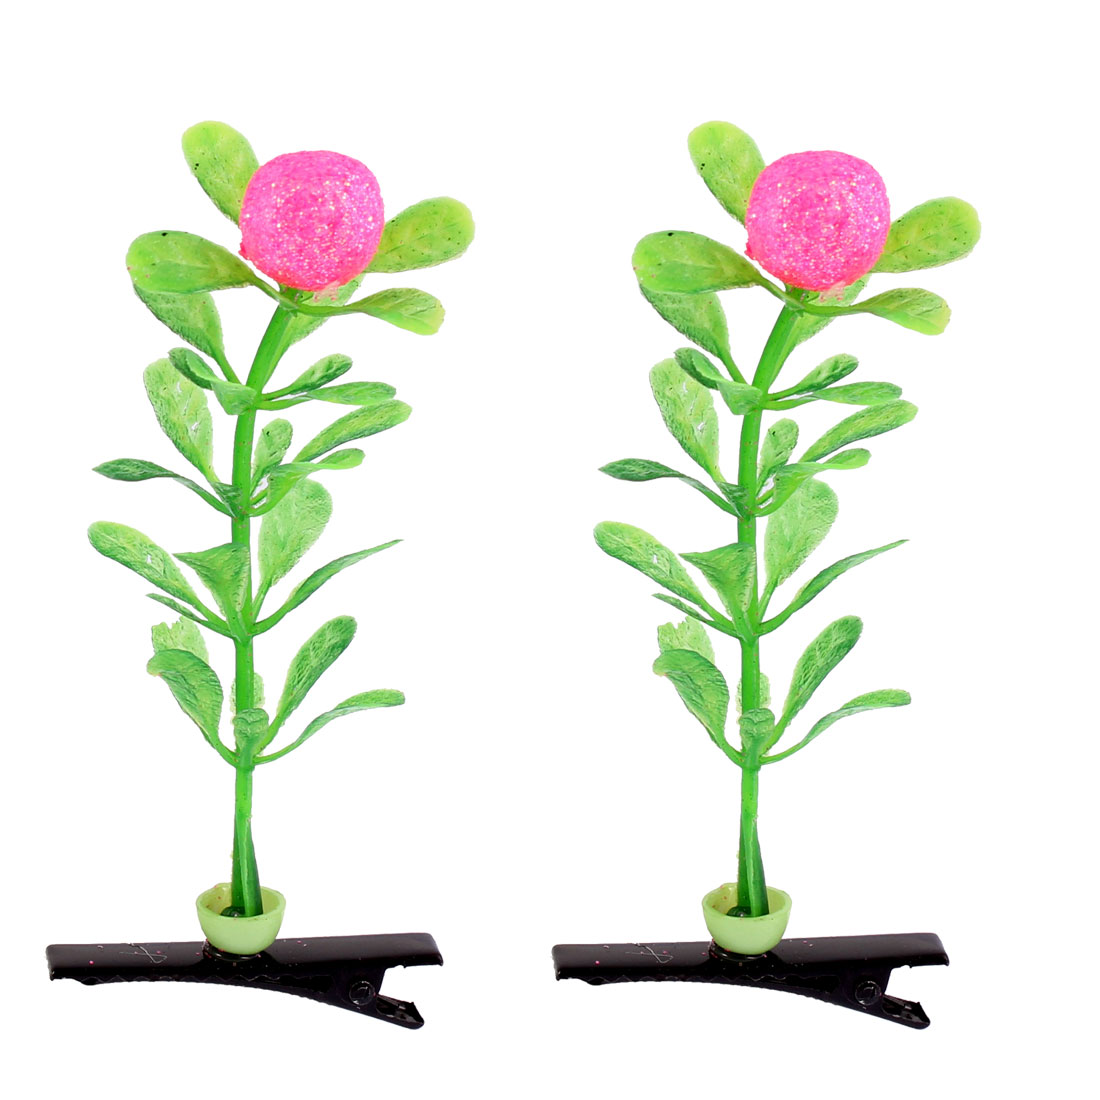 Lady Decor Floral Artificial Plant Antenna Ball Flower Hair Clips Pink 2 Pcs